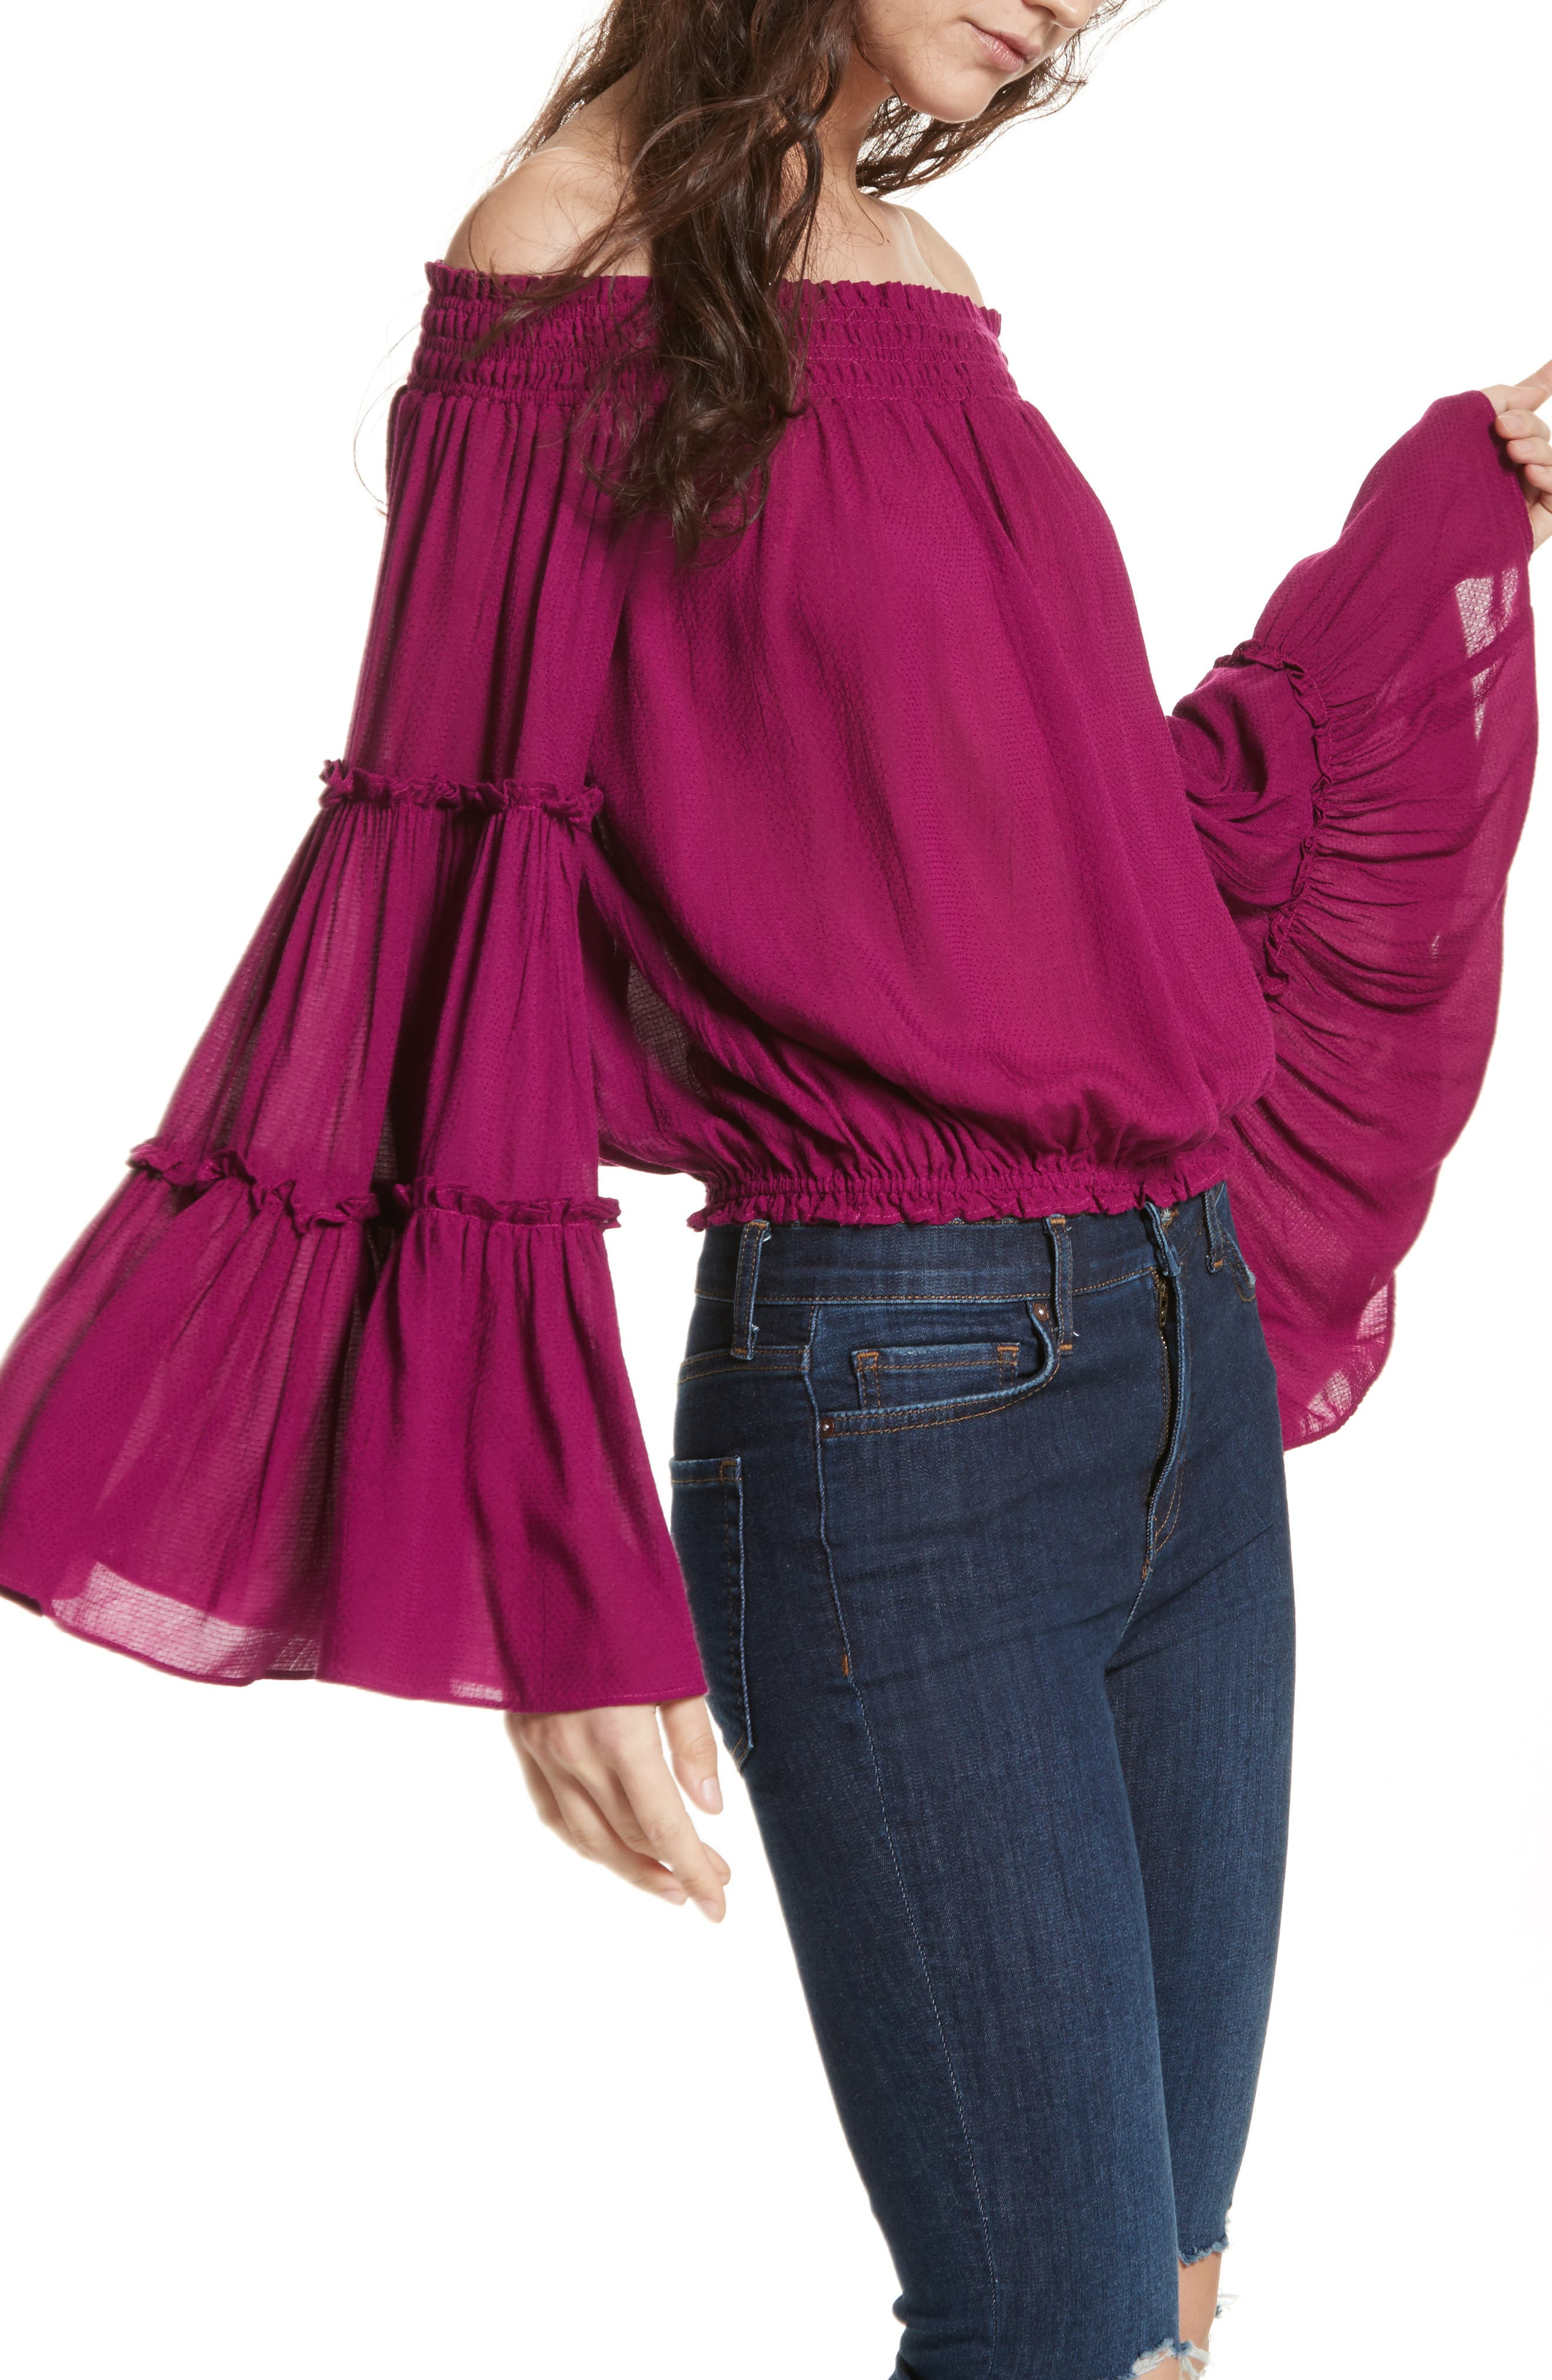 Free Spirit Off the Shoulder Top,                             Main thumbnail 1, color,                             Pink